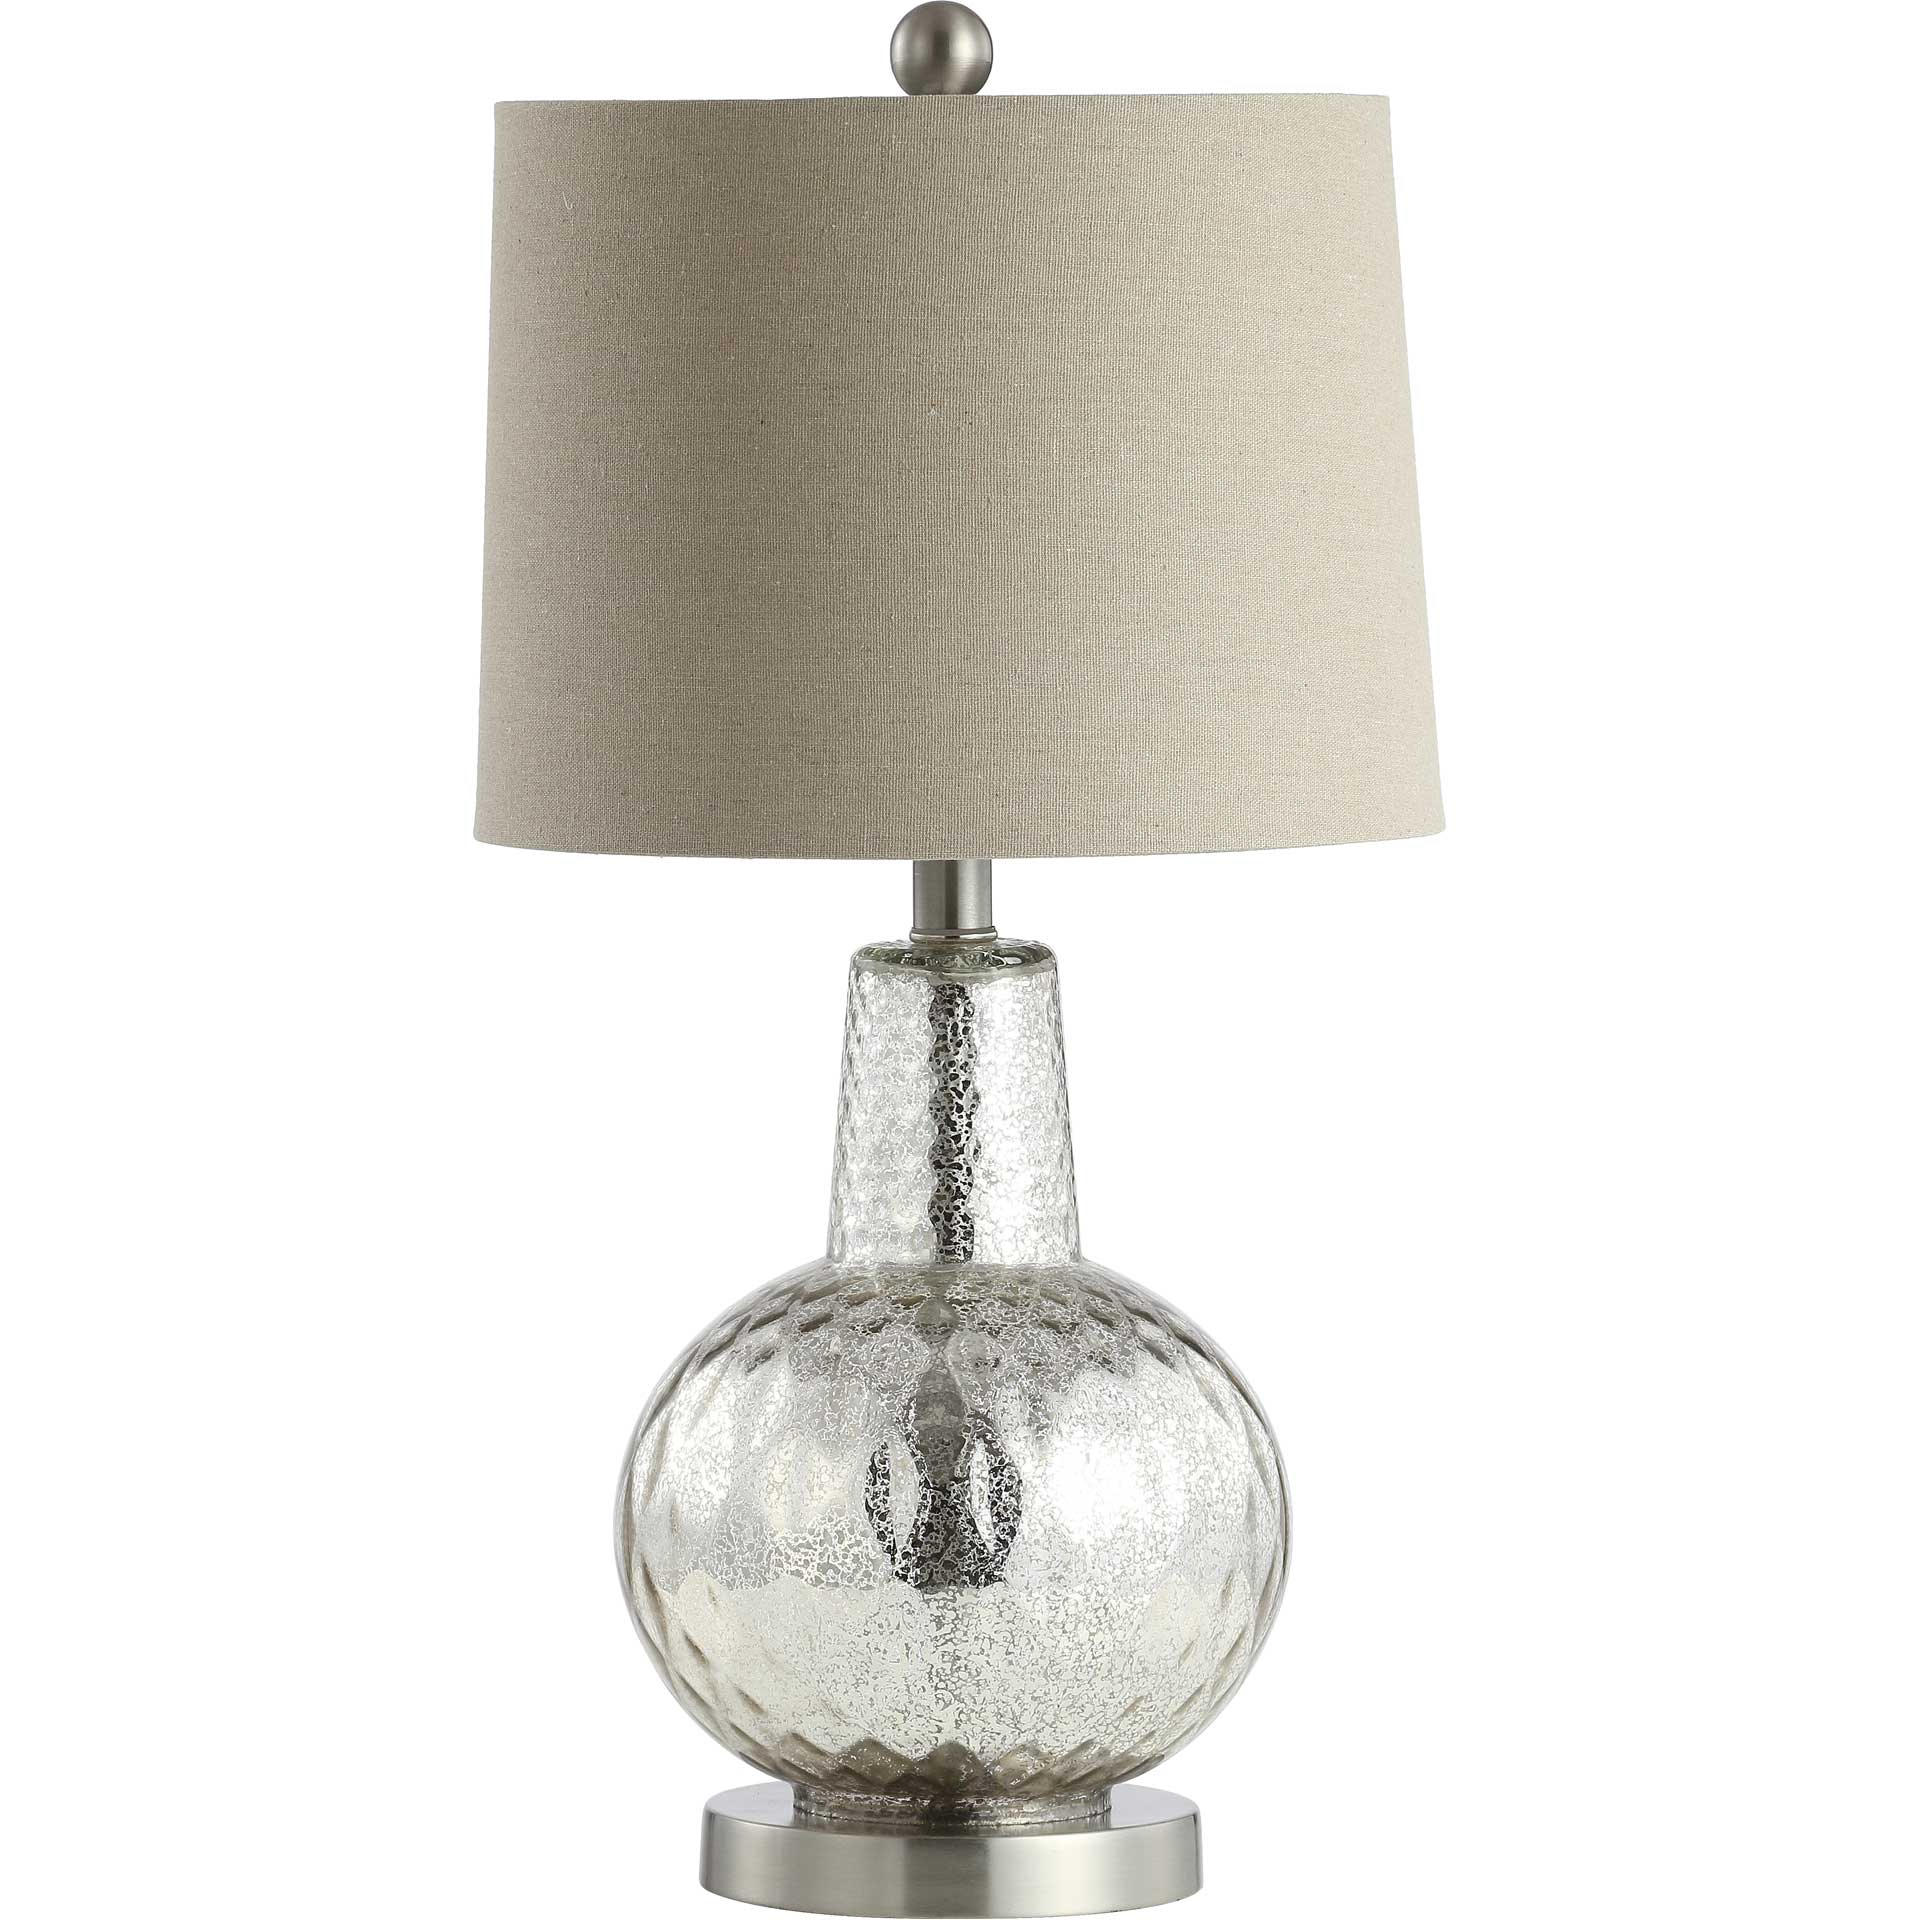 Attune Table Lamp Silver/Ivory